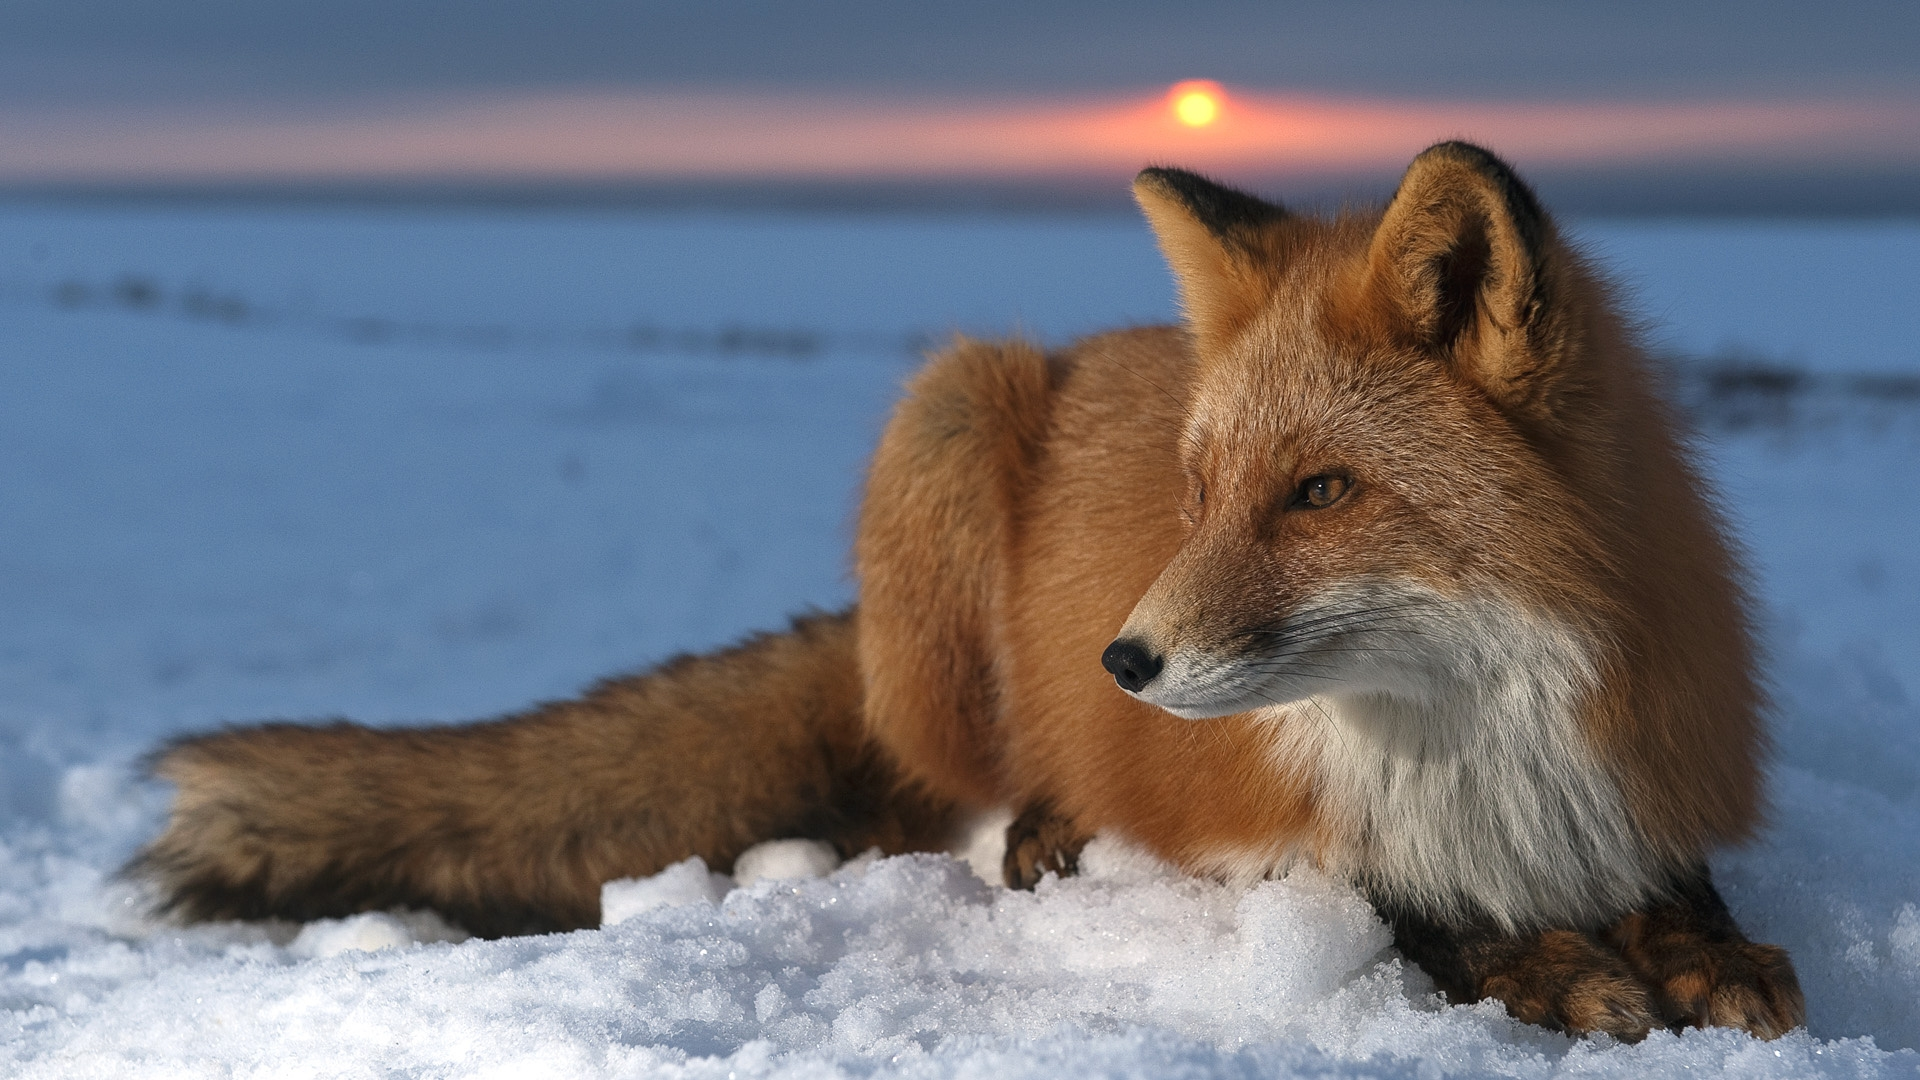 Download Wallpaper fox snow sky hunting care HD Background 1920x1080